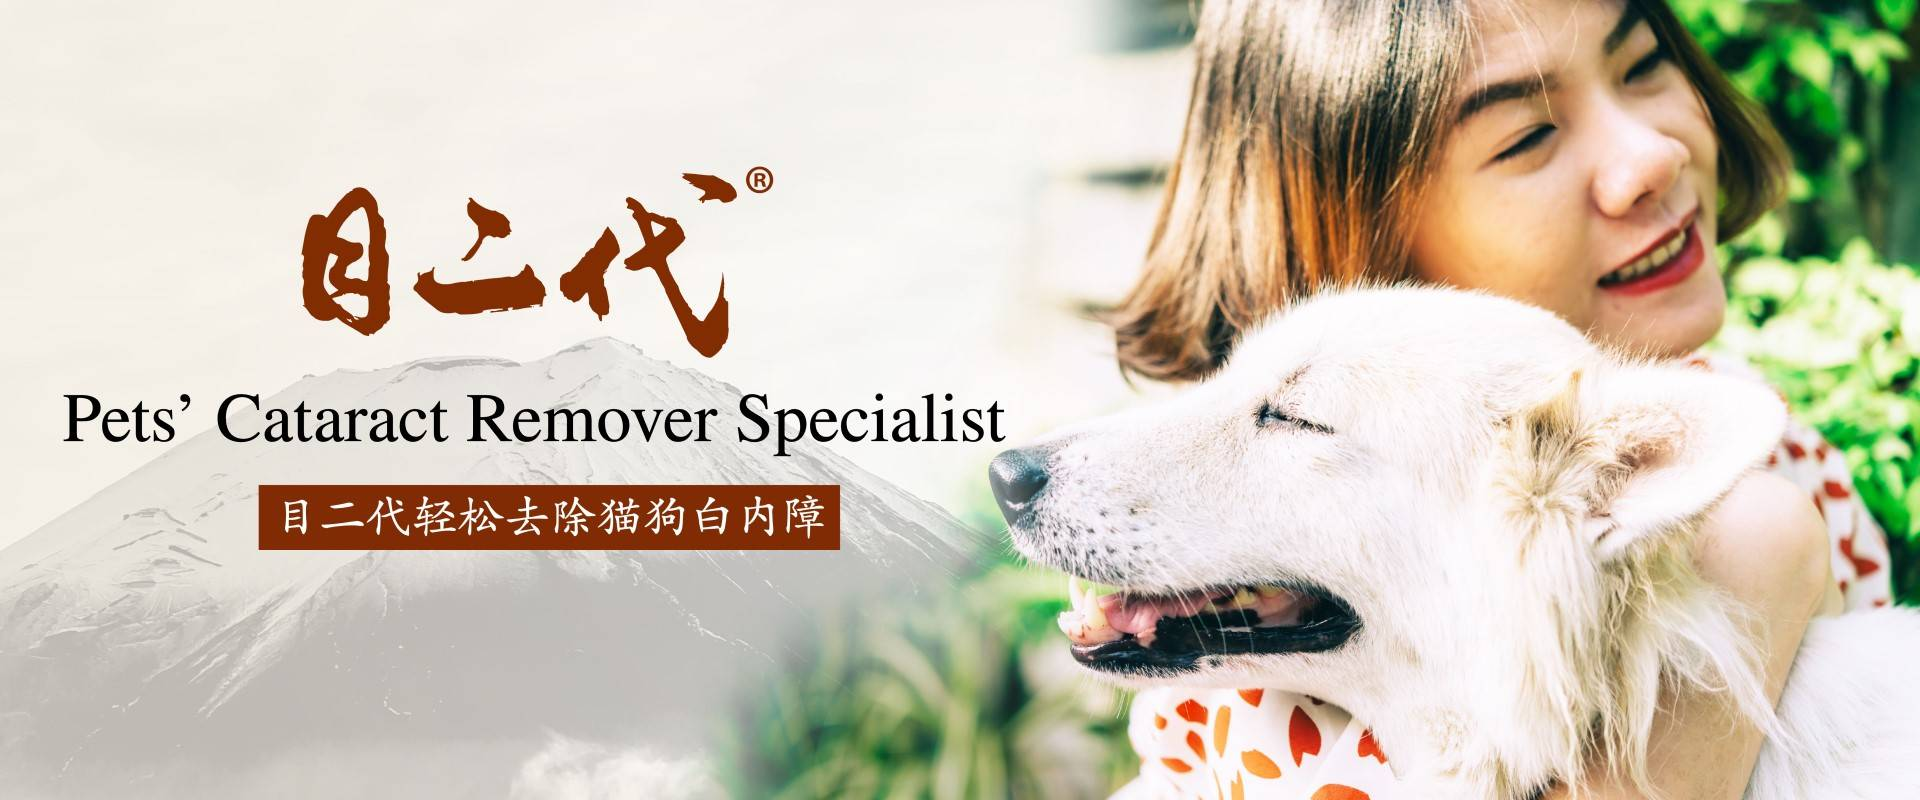 Pets' Cataract Remover Specialist